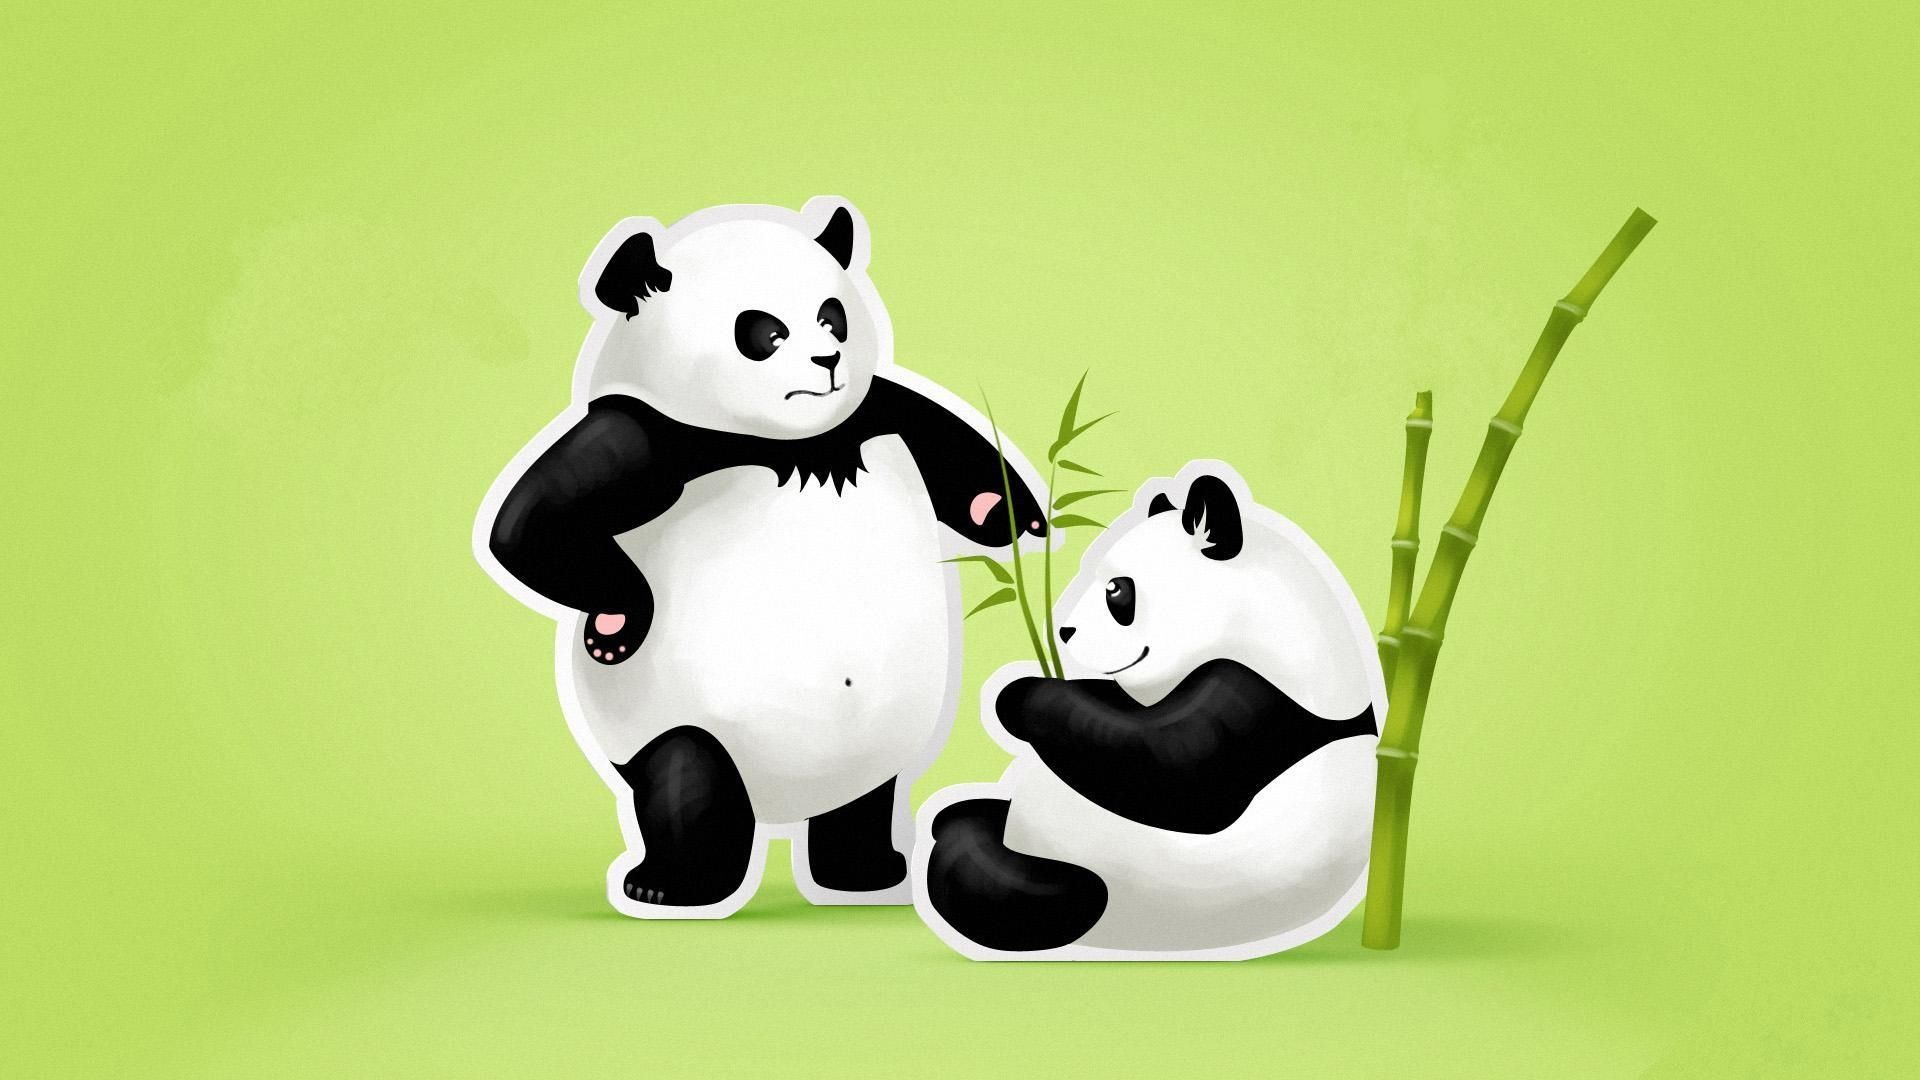 20 Best Panda Wallpaper For Your Desktop | Best Panda Wallpaper ...